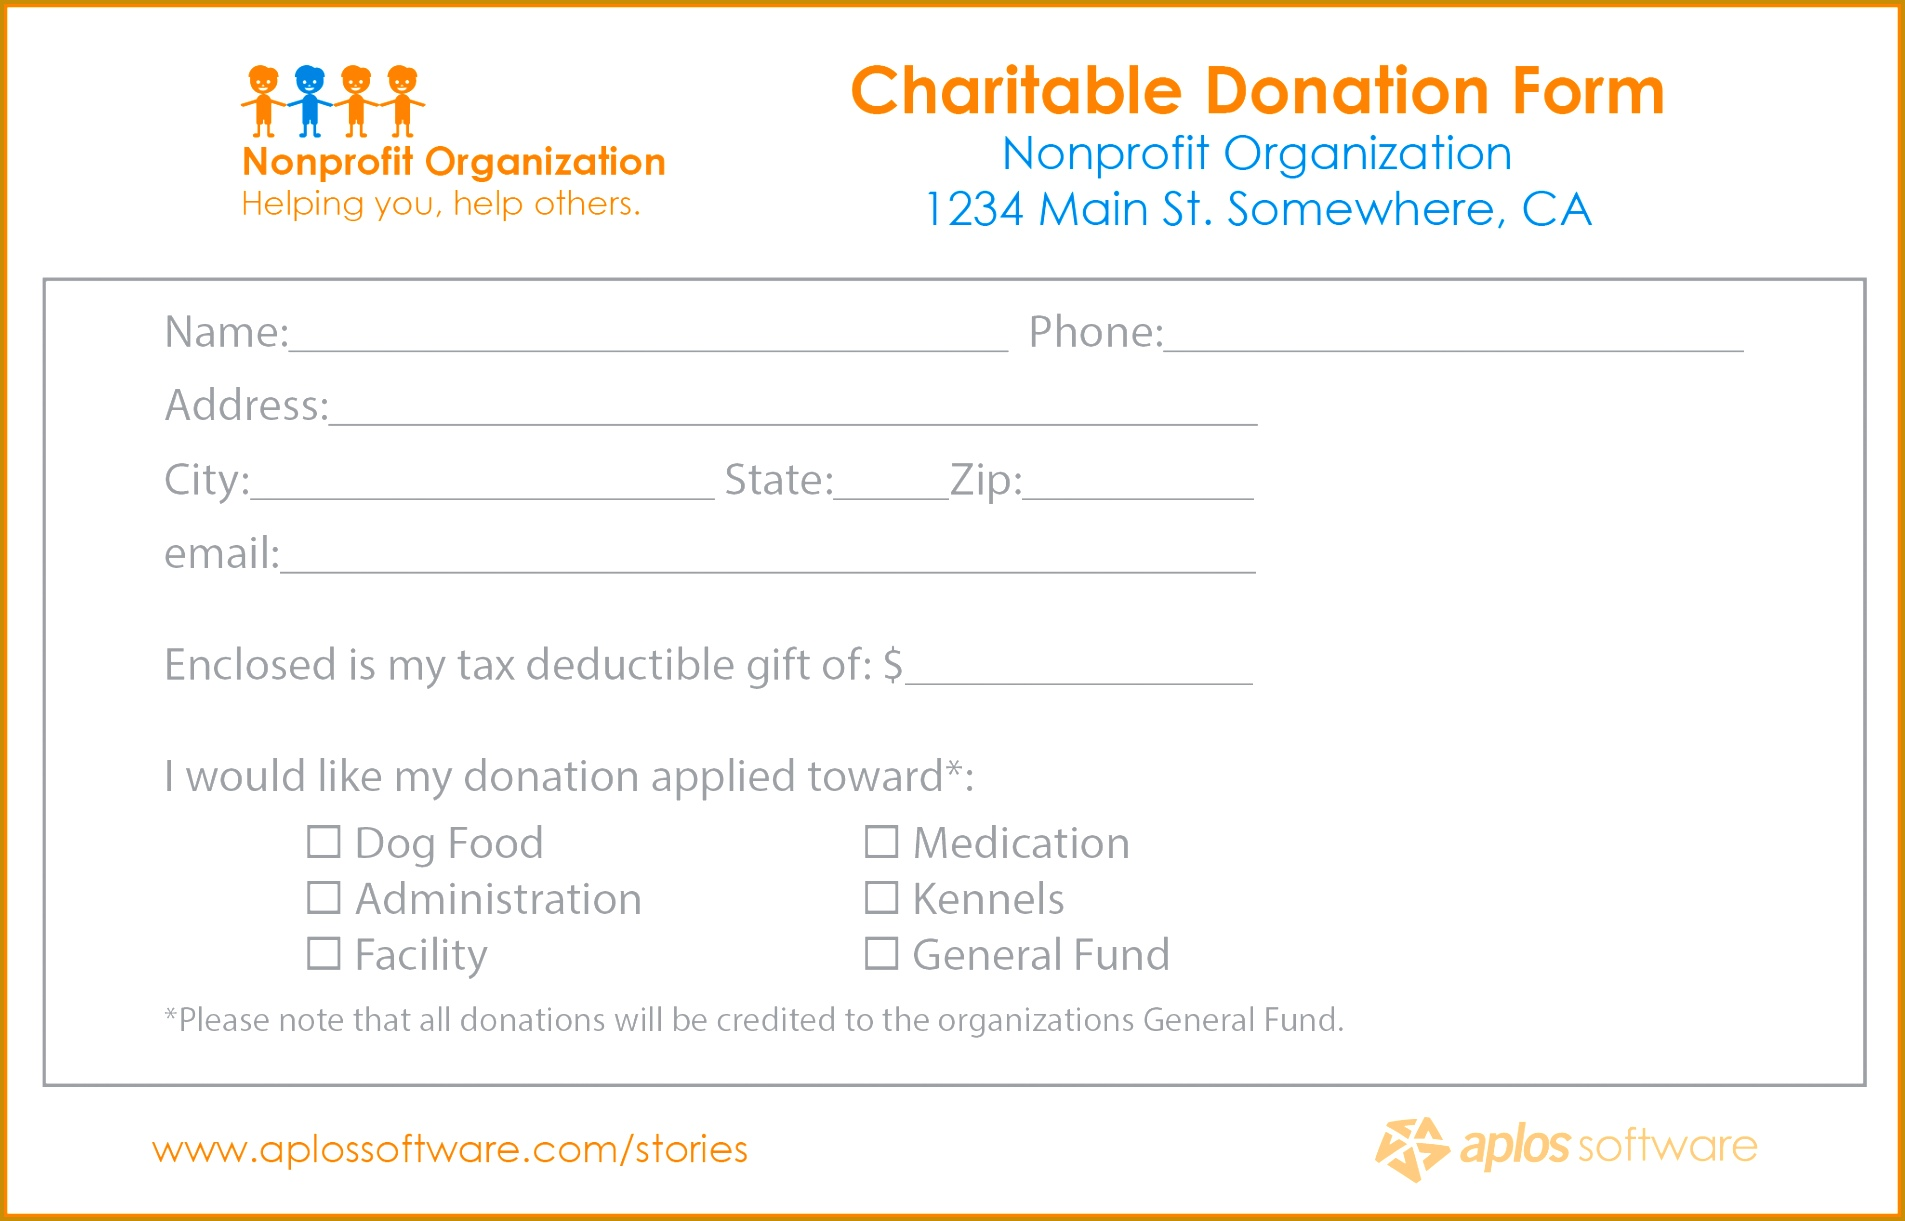 5 Donations Form Template Mail Clerked Donations Form Template Sample Donation Pledge Form 5 Donations Form 12211905